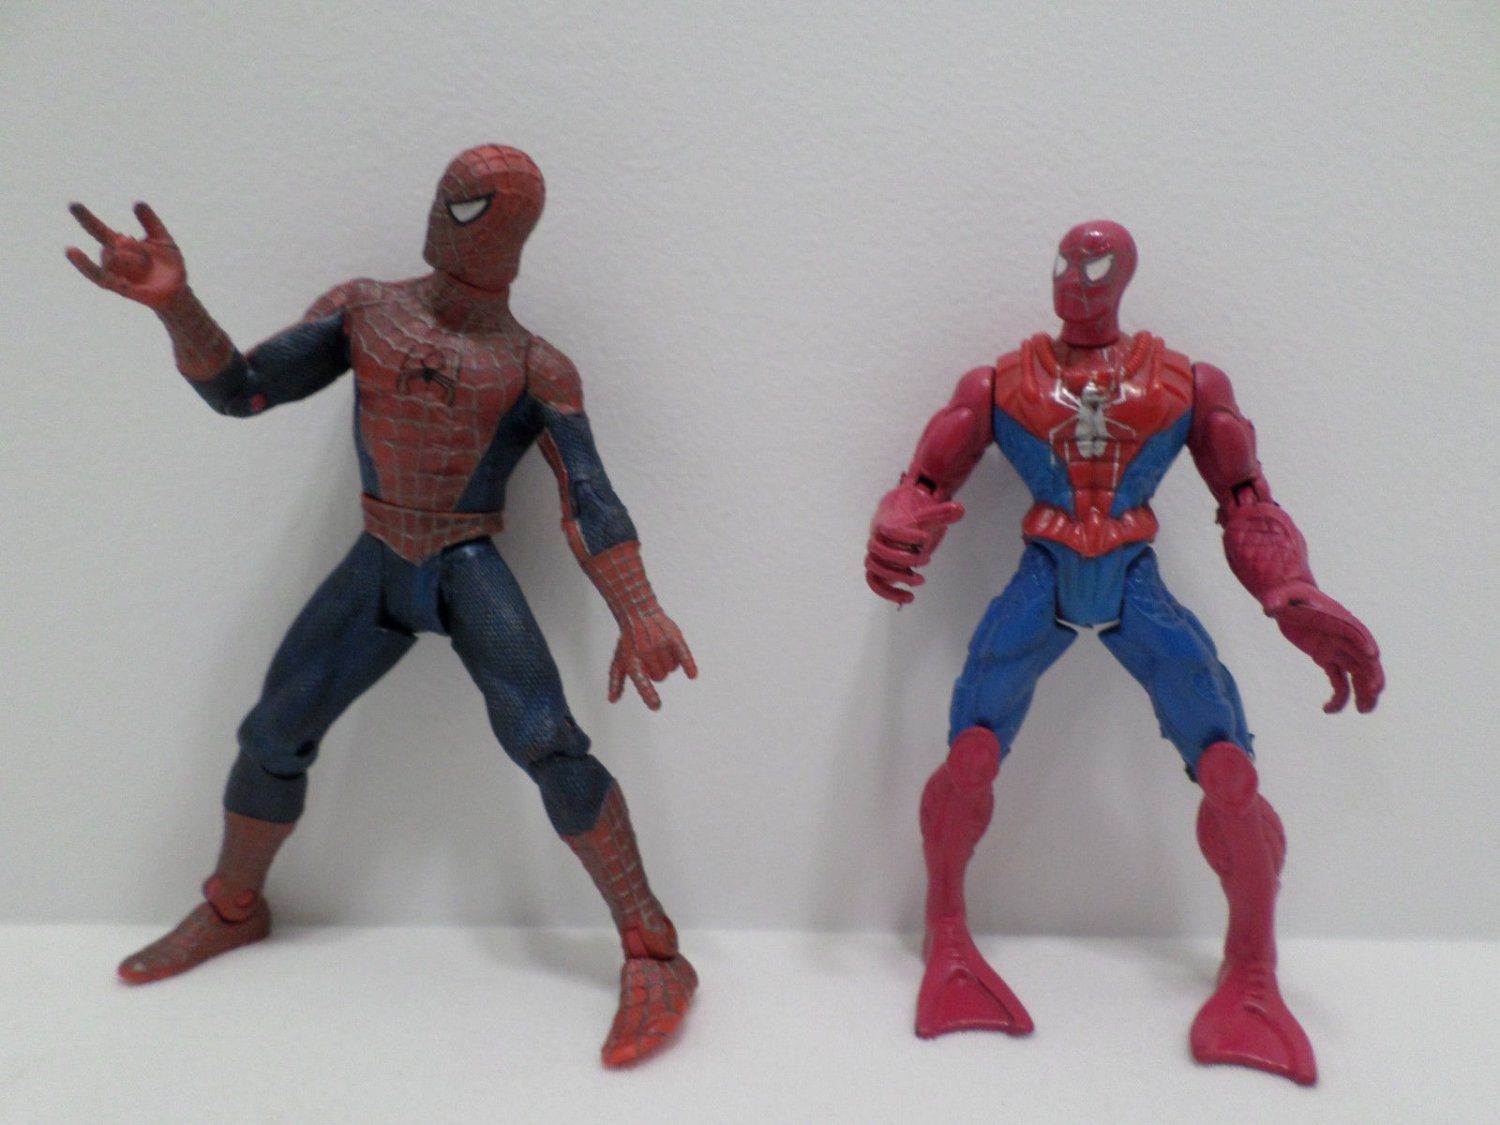 Spiderman Action Figures by Marvel